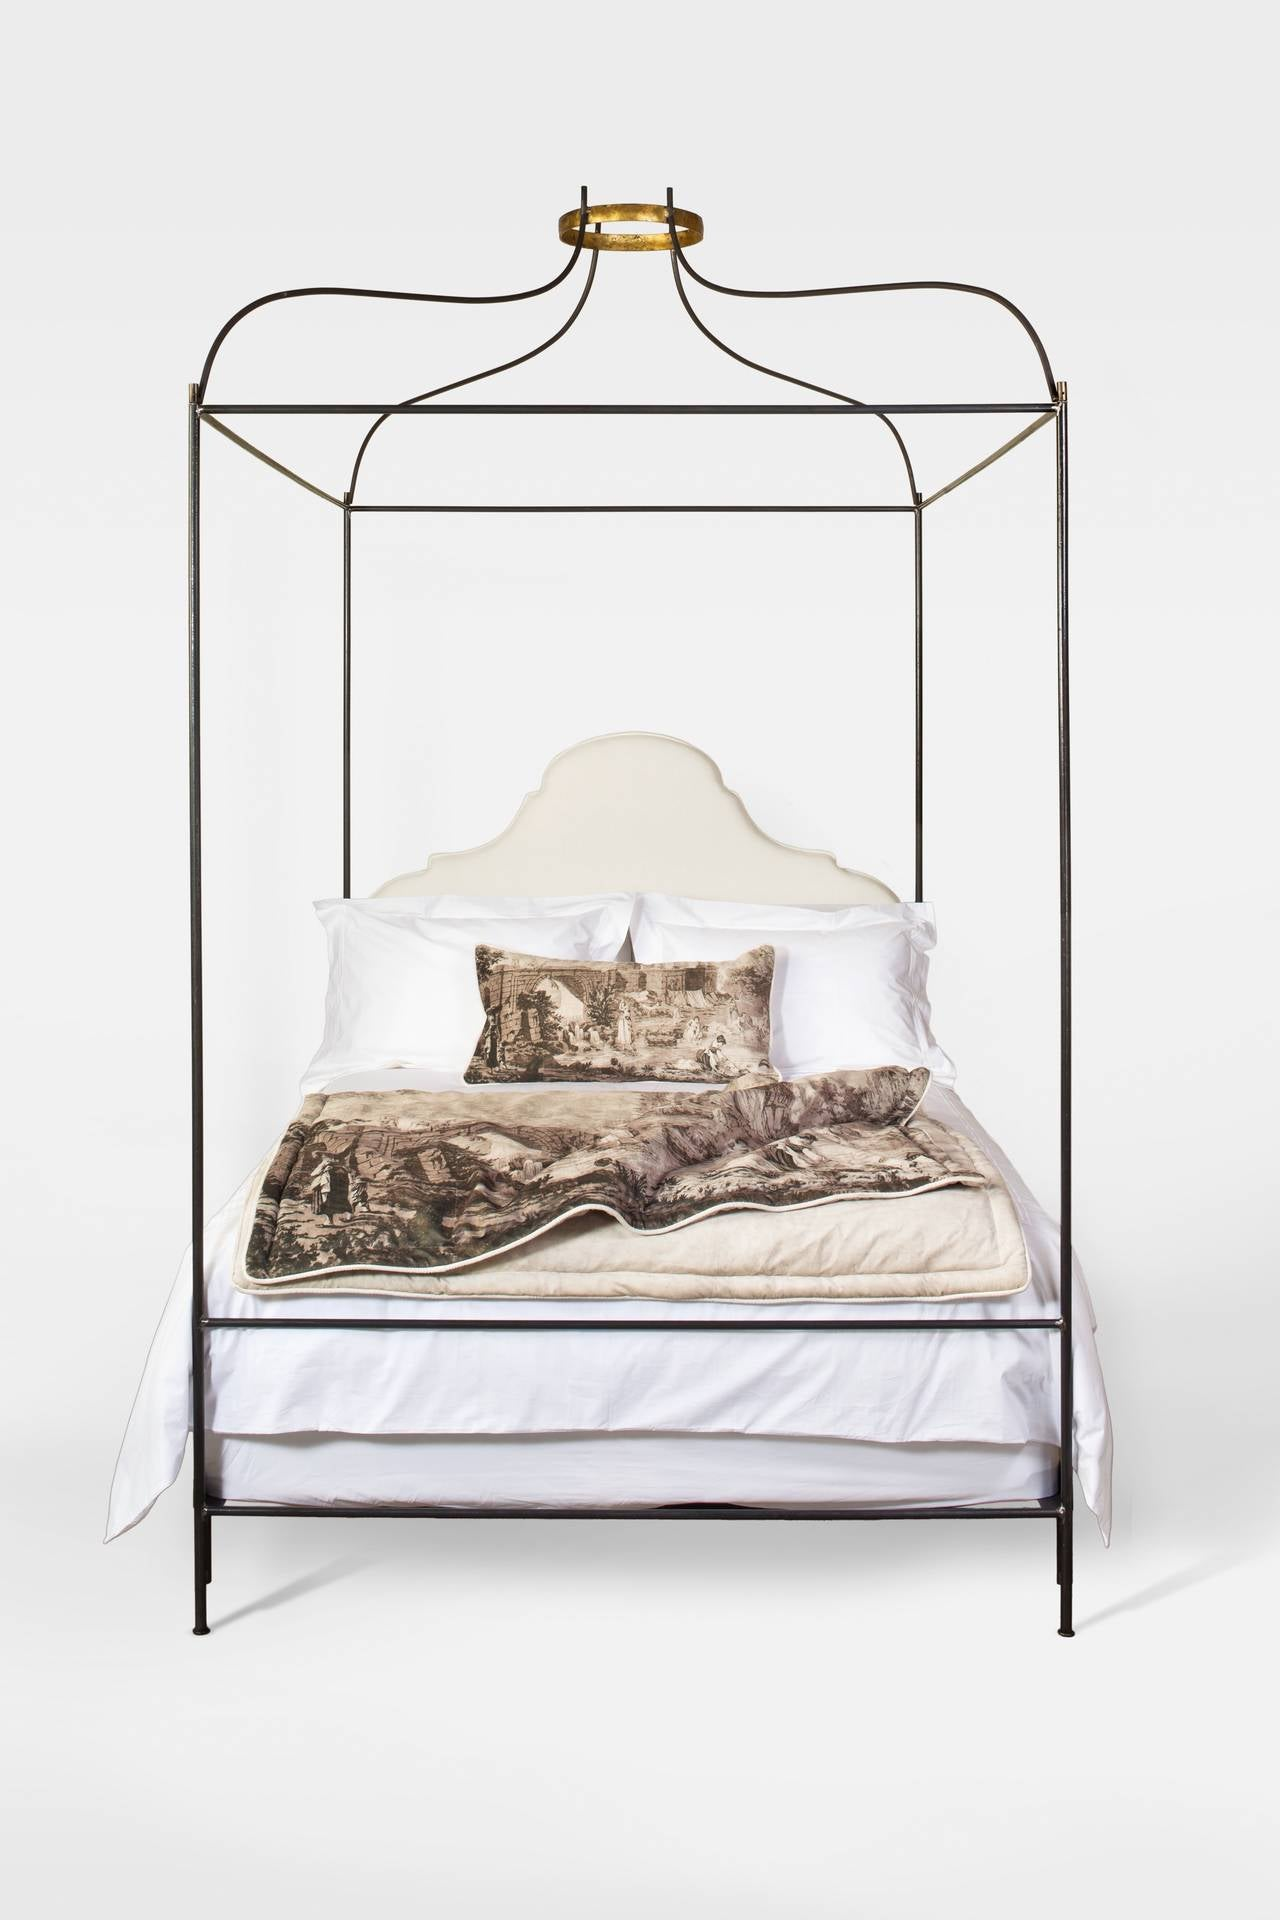 This Iron Venetian Canopy Bed With Upholstered Headboard From The Tara Shaw Maison Collection Is One